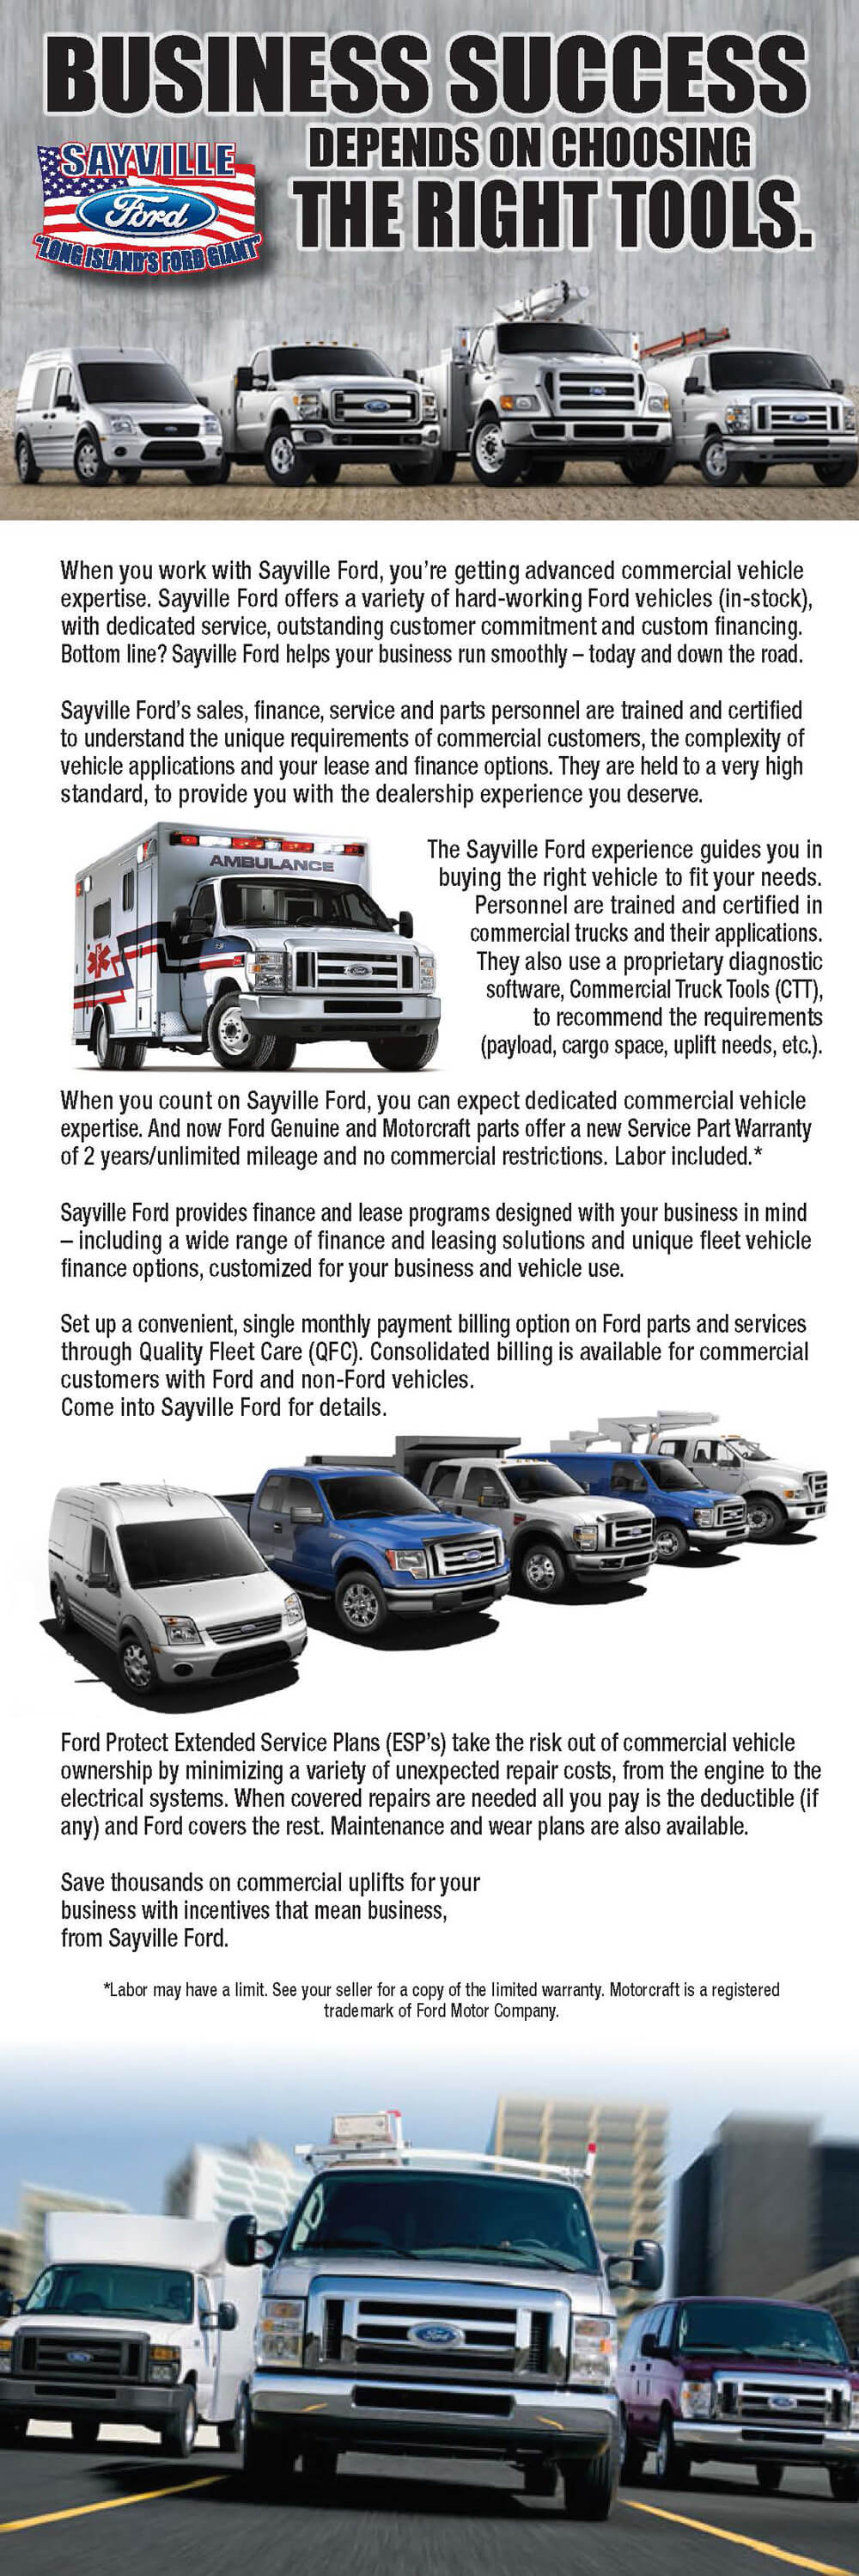 infographic showcasing the commercial vehicle options at Sayville Ford